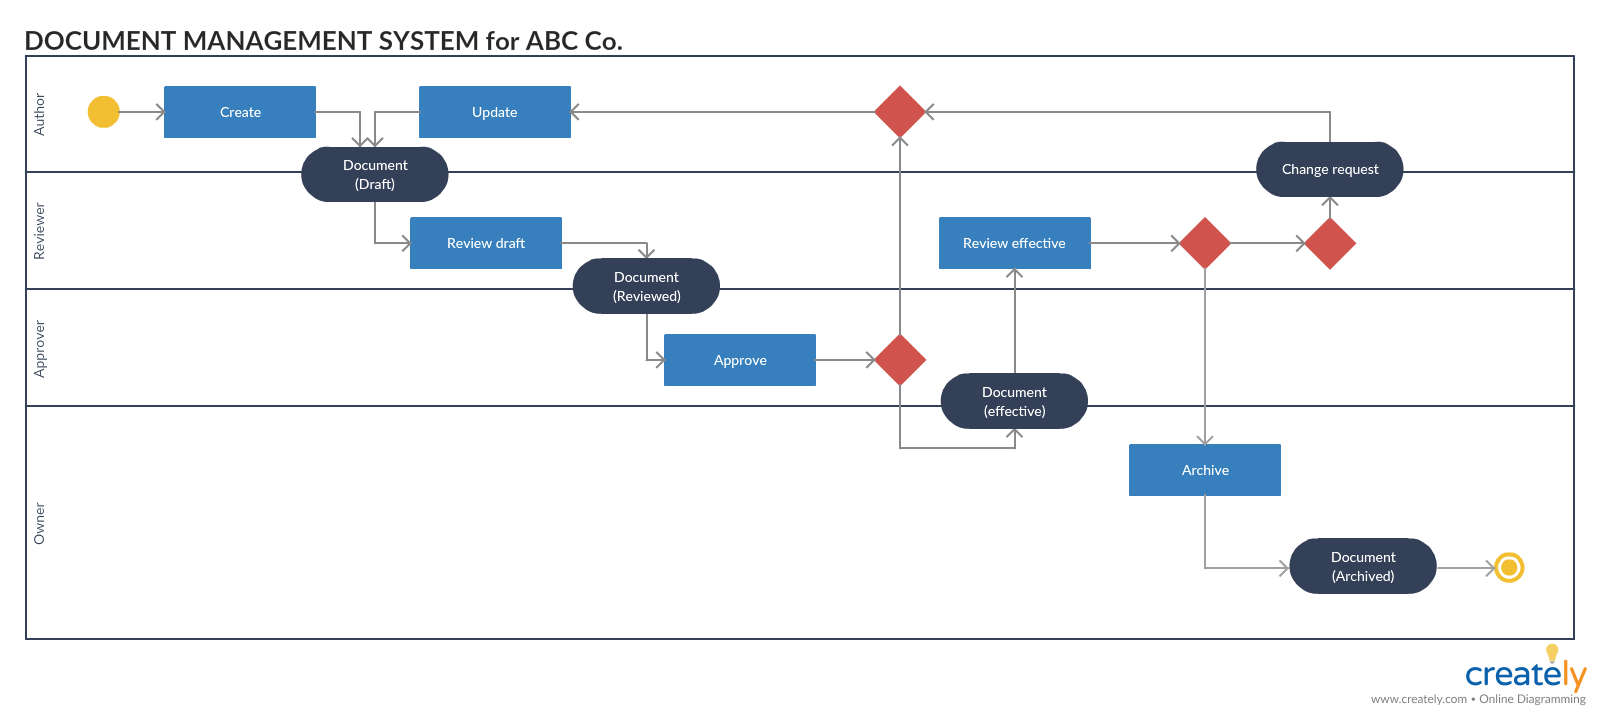 Activity Diagram for Document Management System